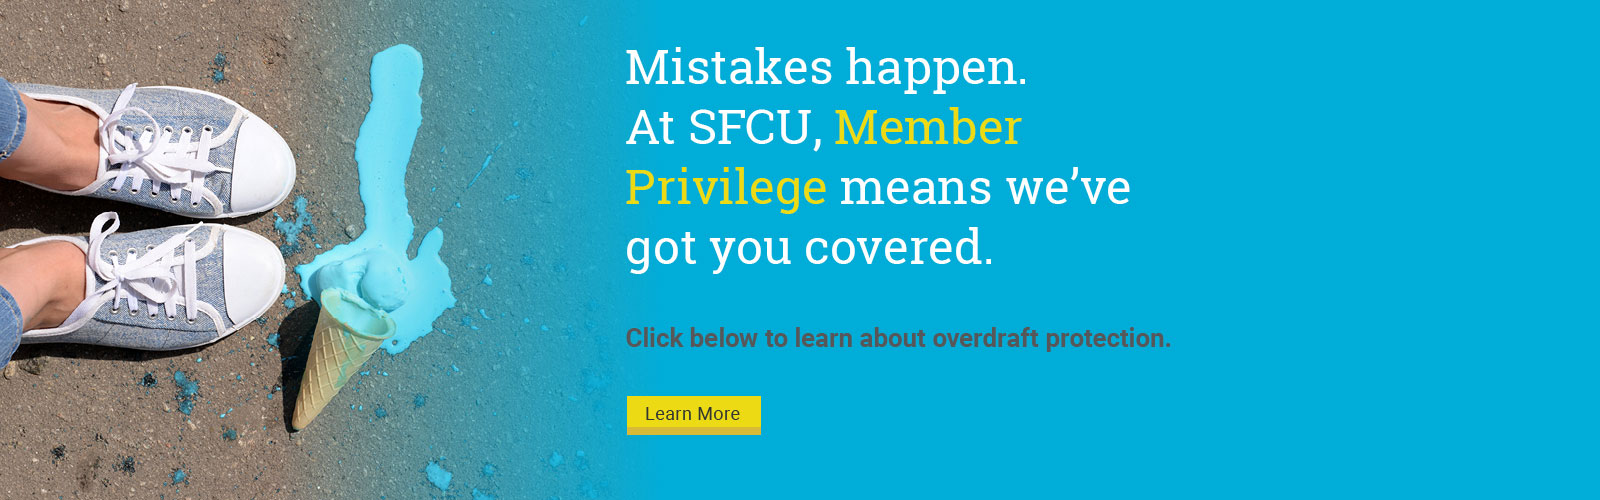 Mistakes happen. At SFCU, Member Privilege means we've got you covered.